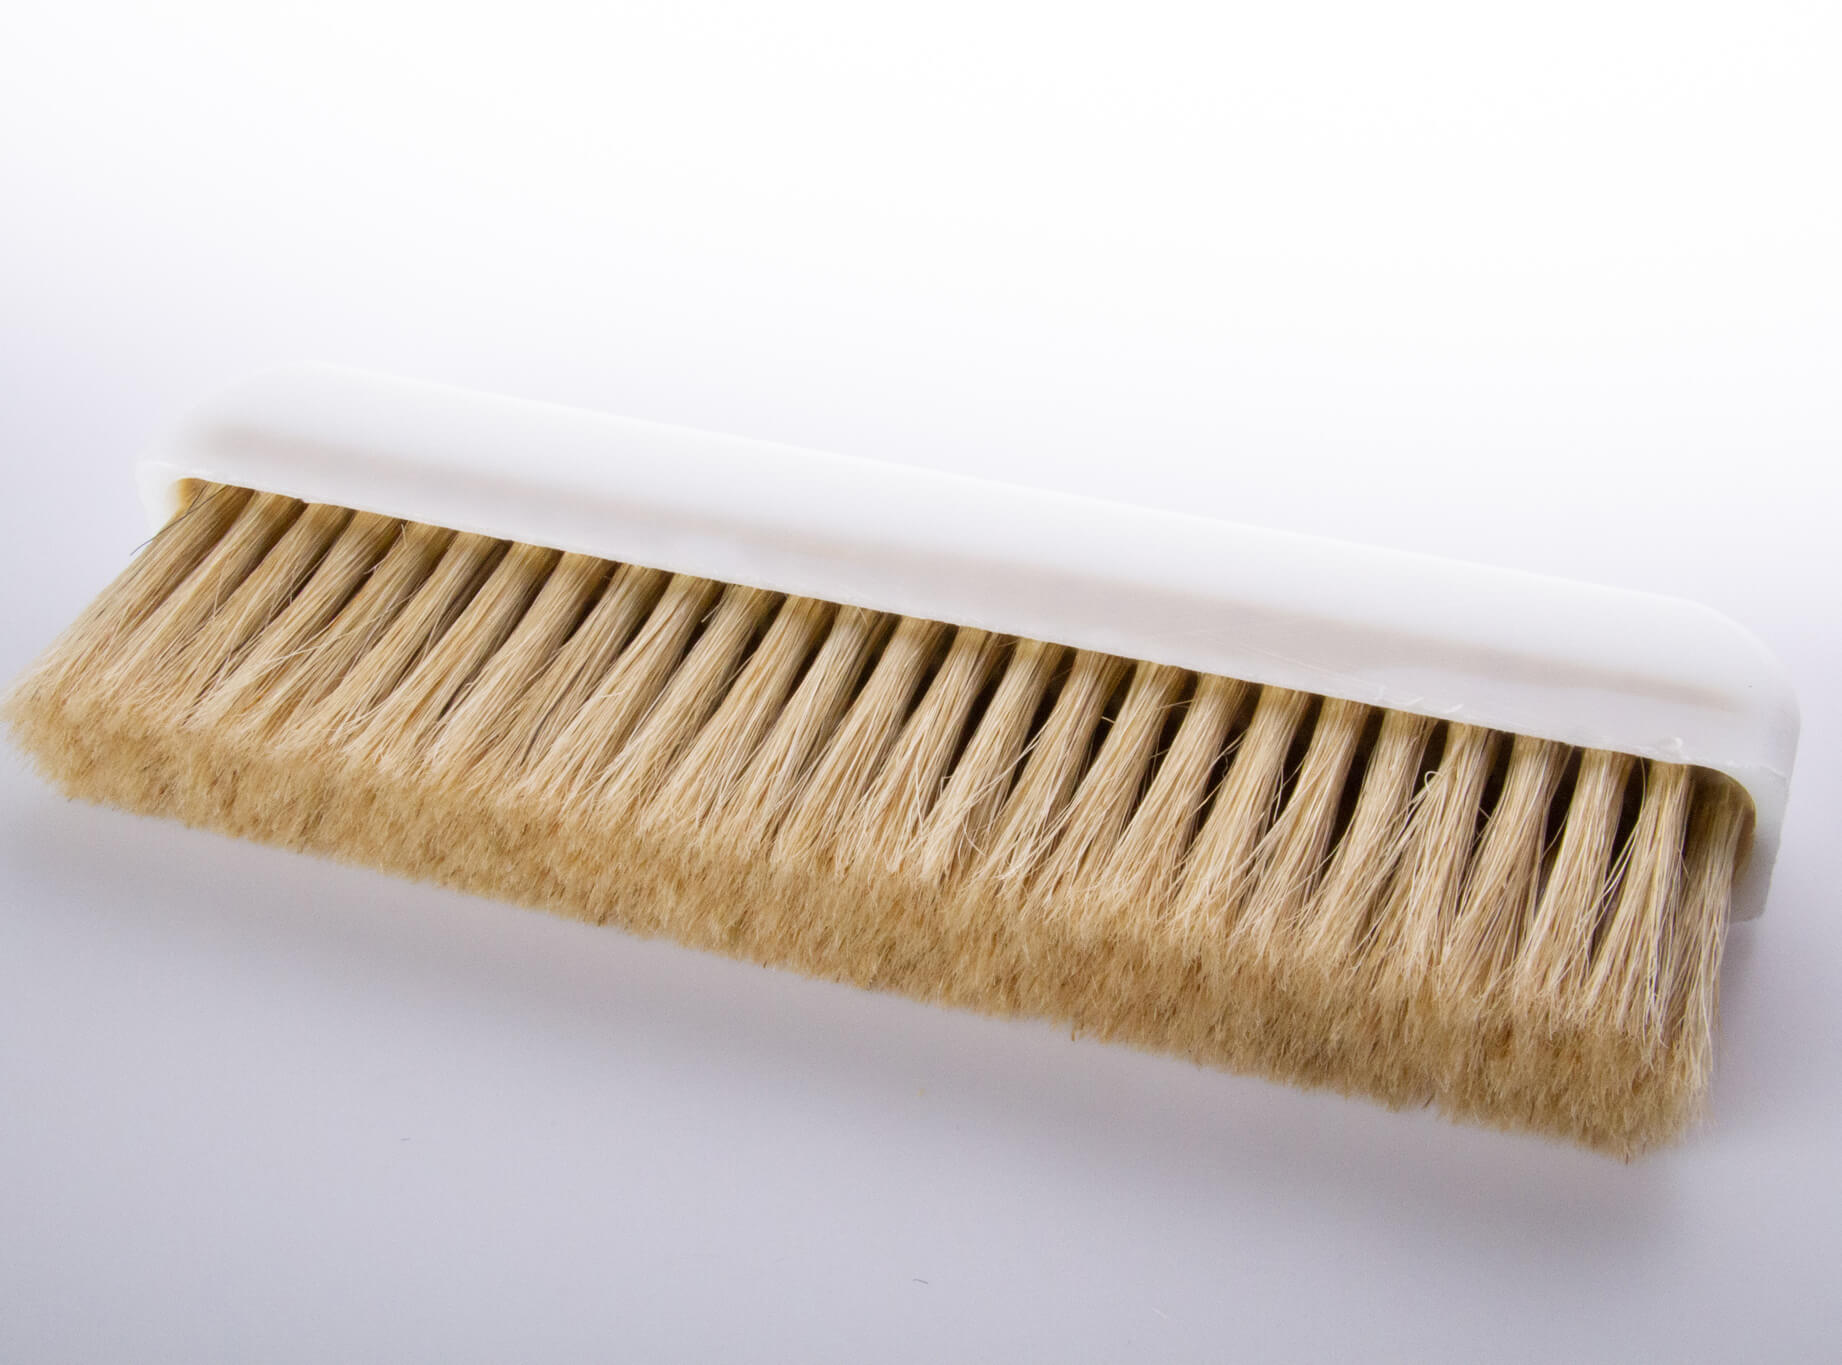 Creeds Table Brushes